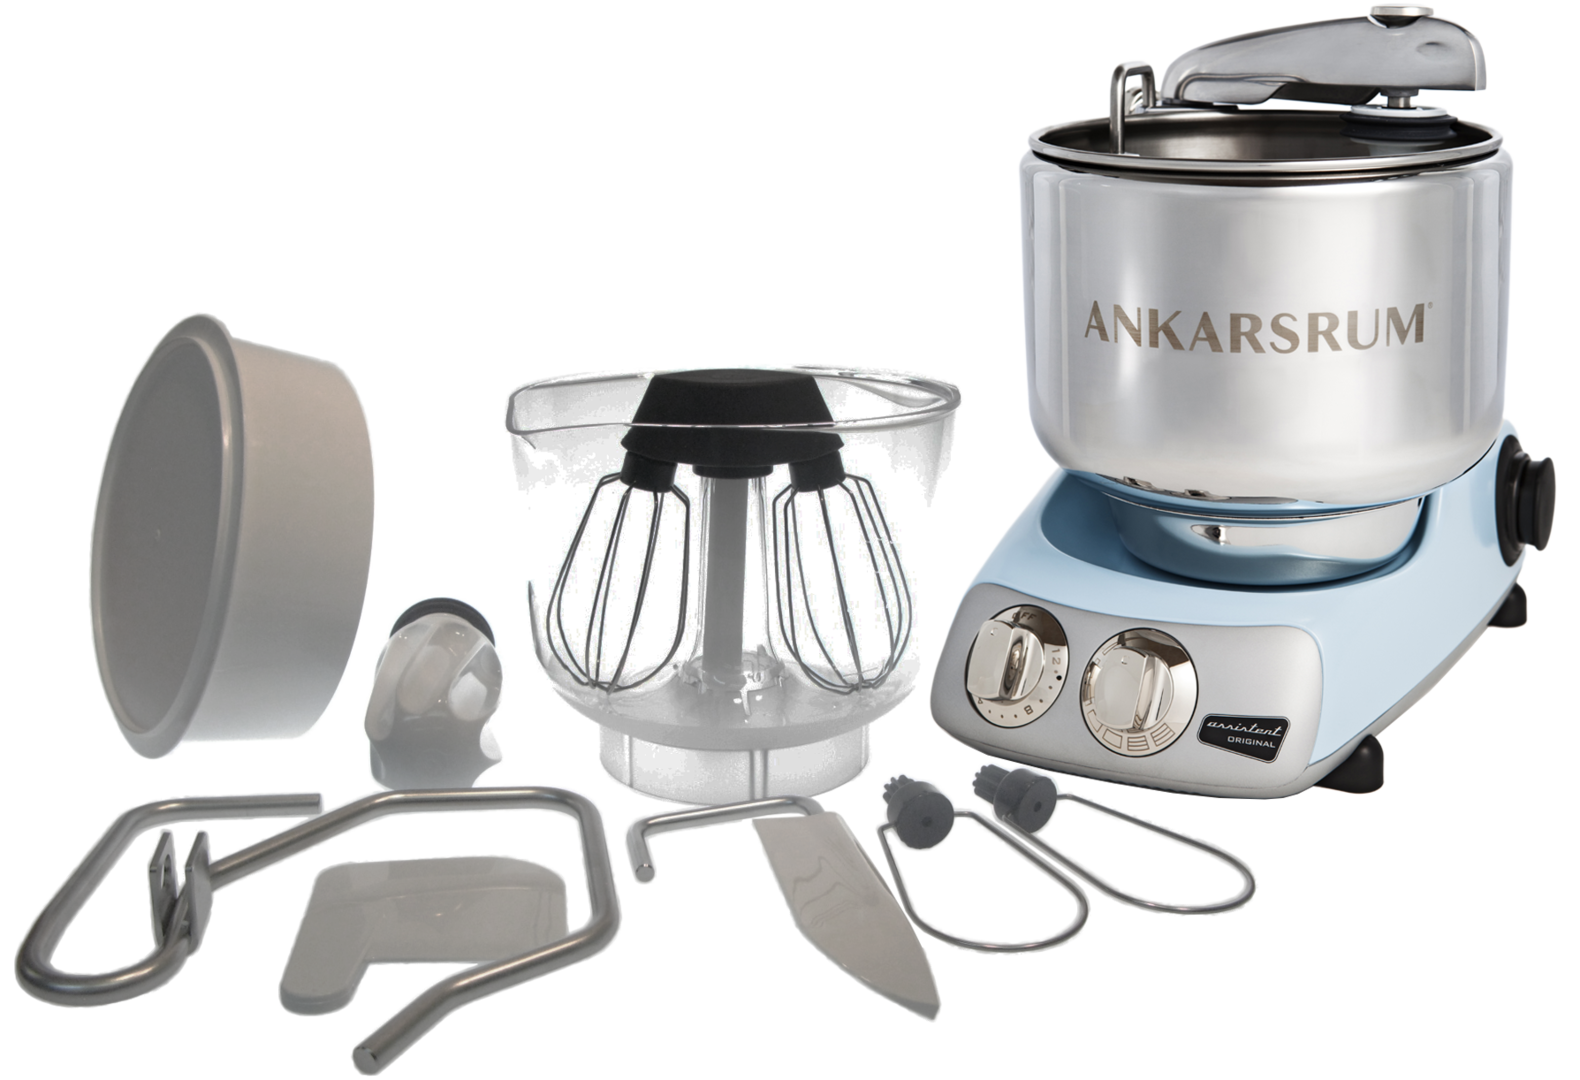 Ankarsrum Original Multifunction Mixer, Pearl Blue (2300102)